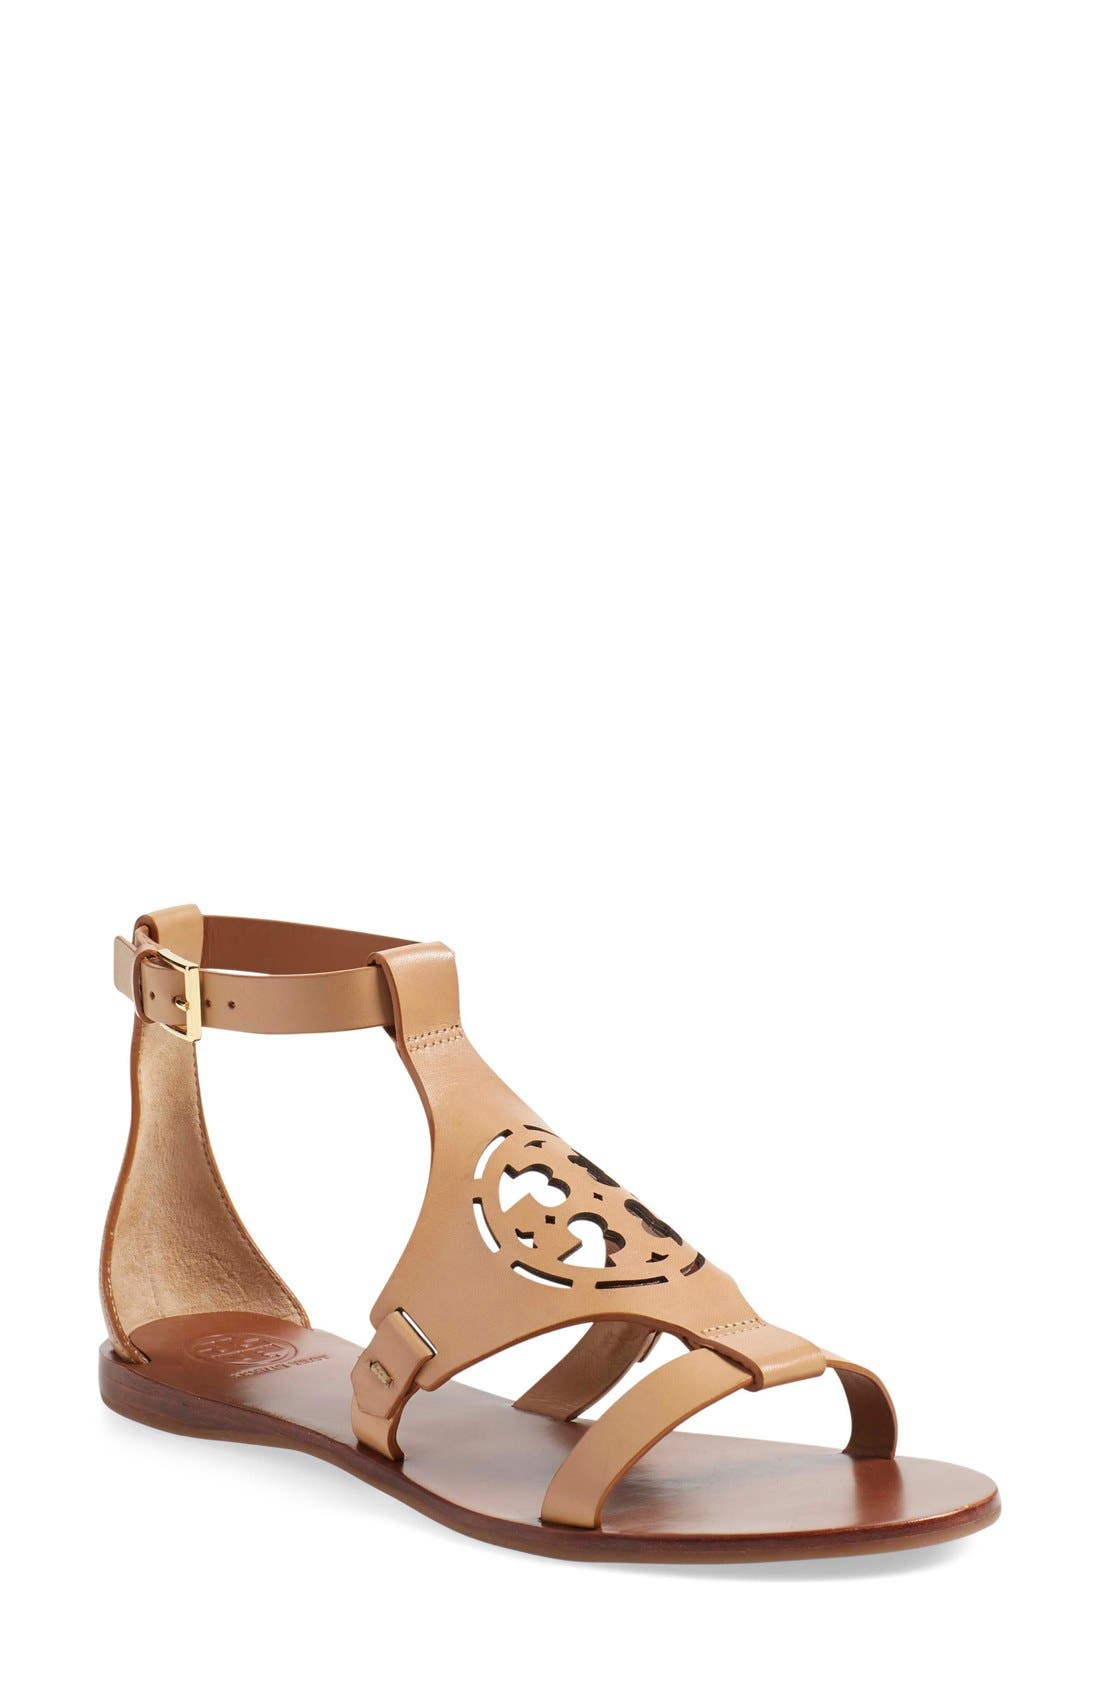 Alternate Image 1 Selected - Tory Burch 'Zoey' Sandal (Women)